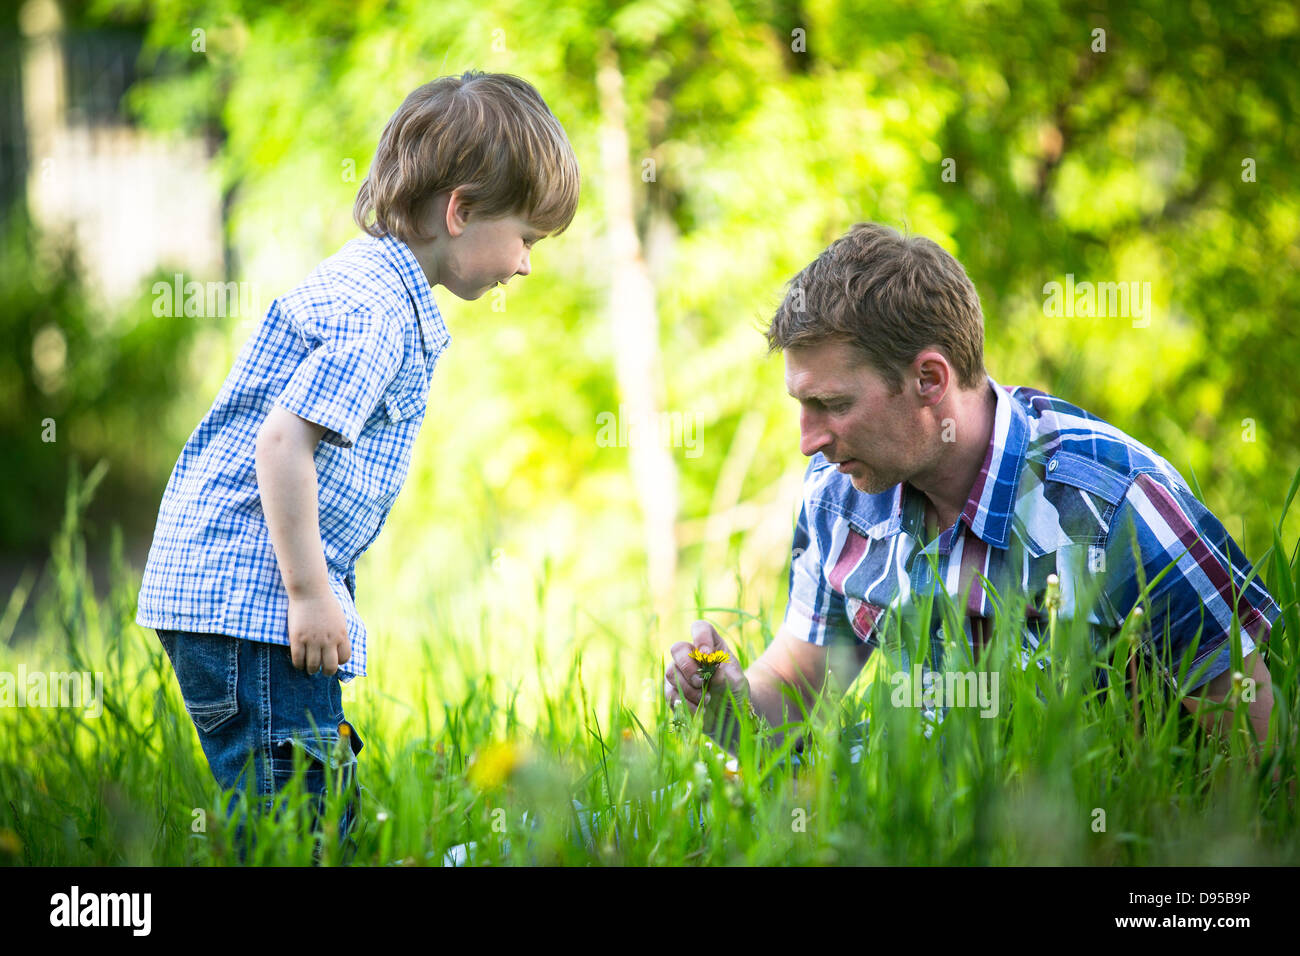 Father and son playing in the park. - Stock Image